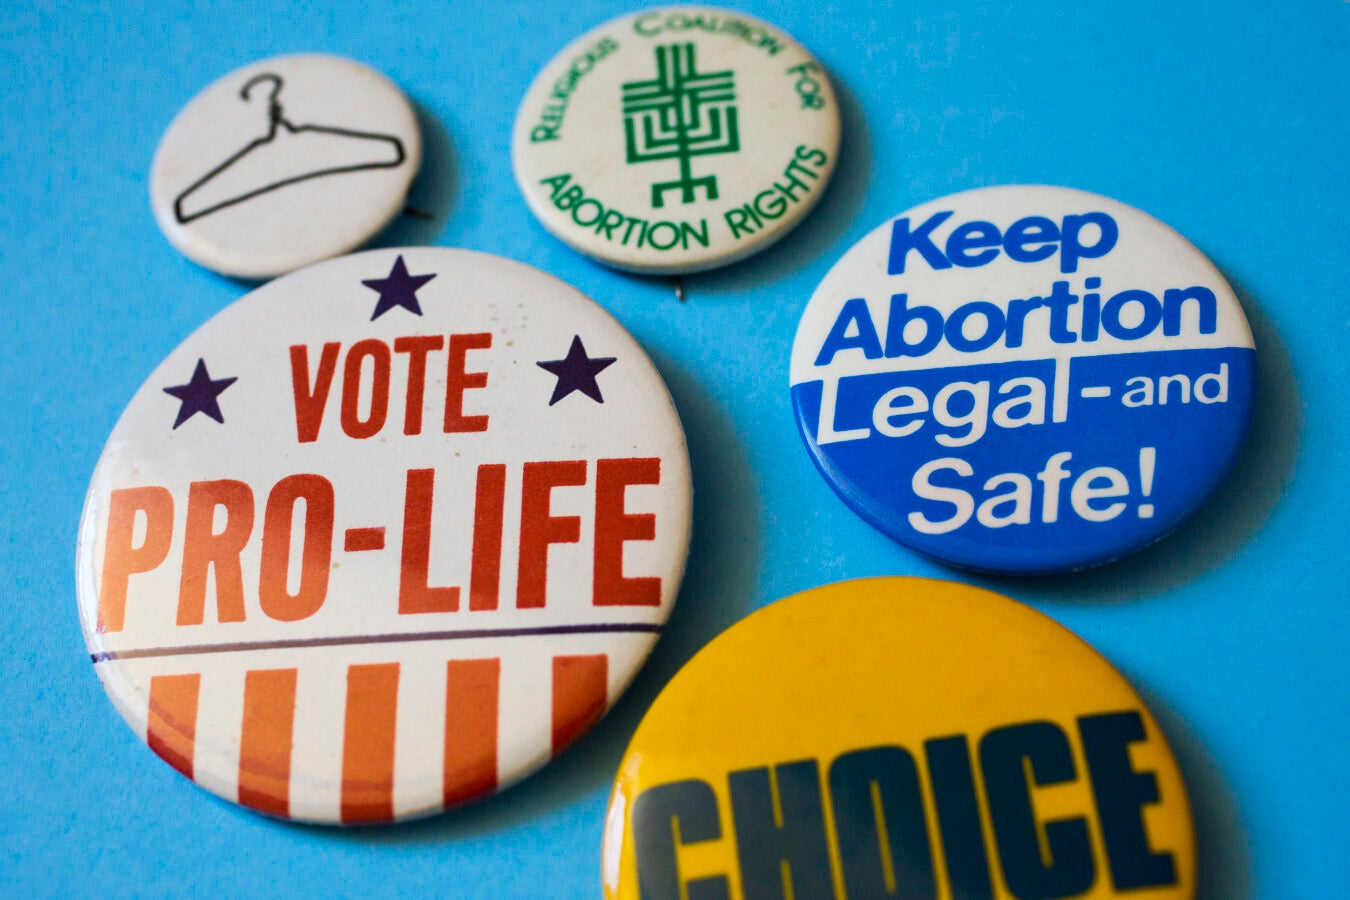 Buttons for and against reproductive rights.